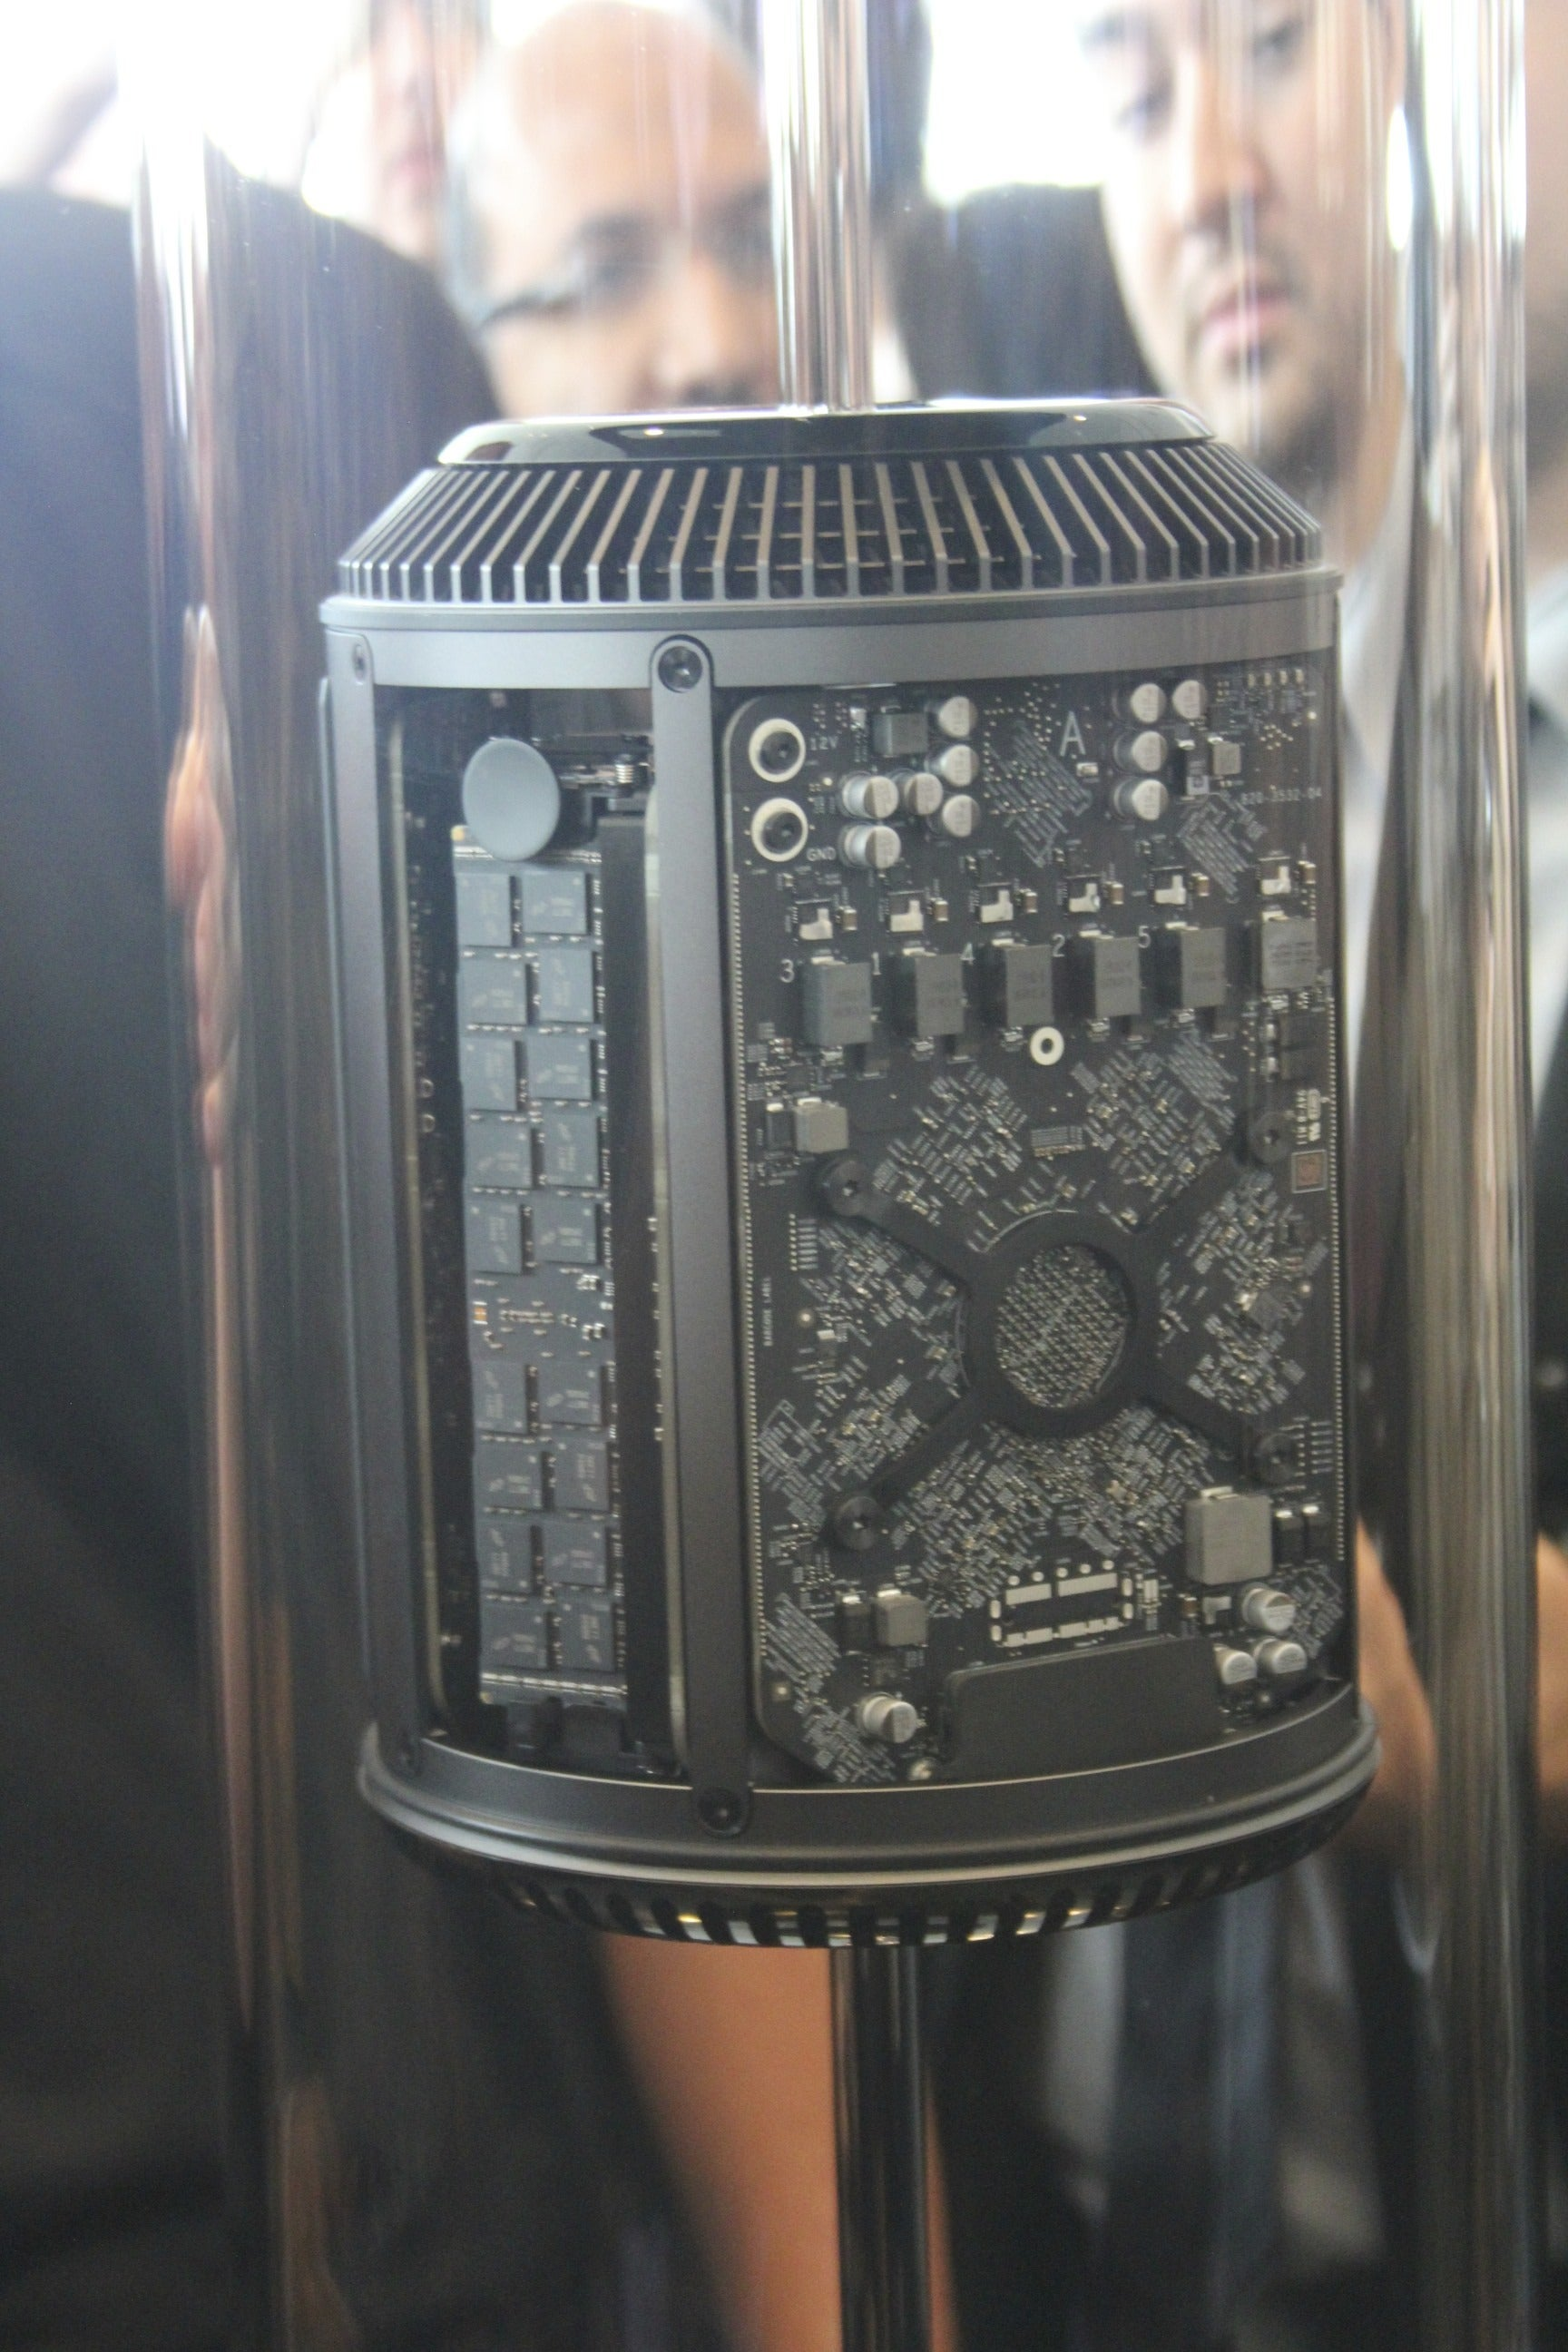 The new Mac Pro: Hands on, and what you need to know   Macworld